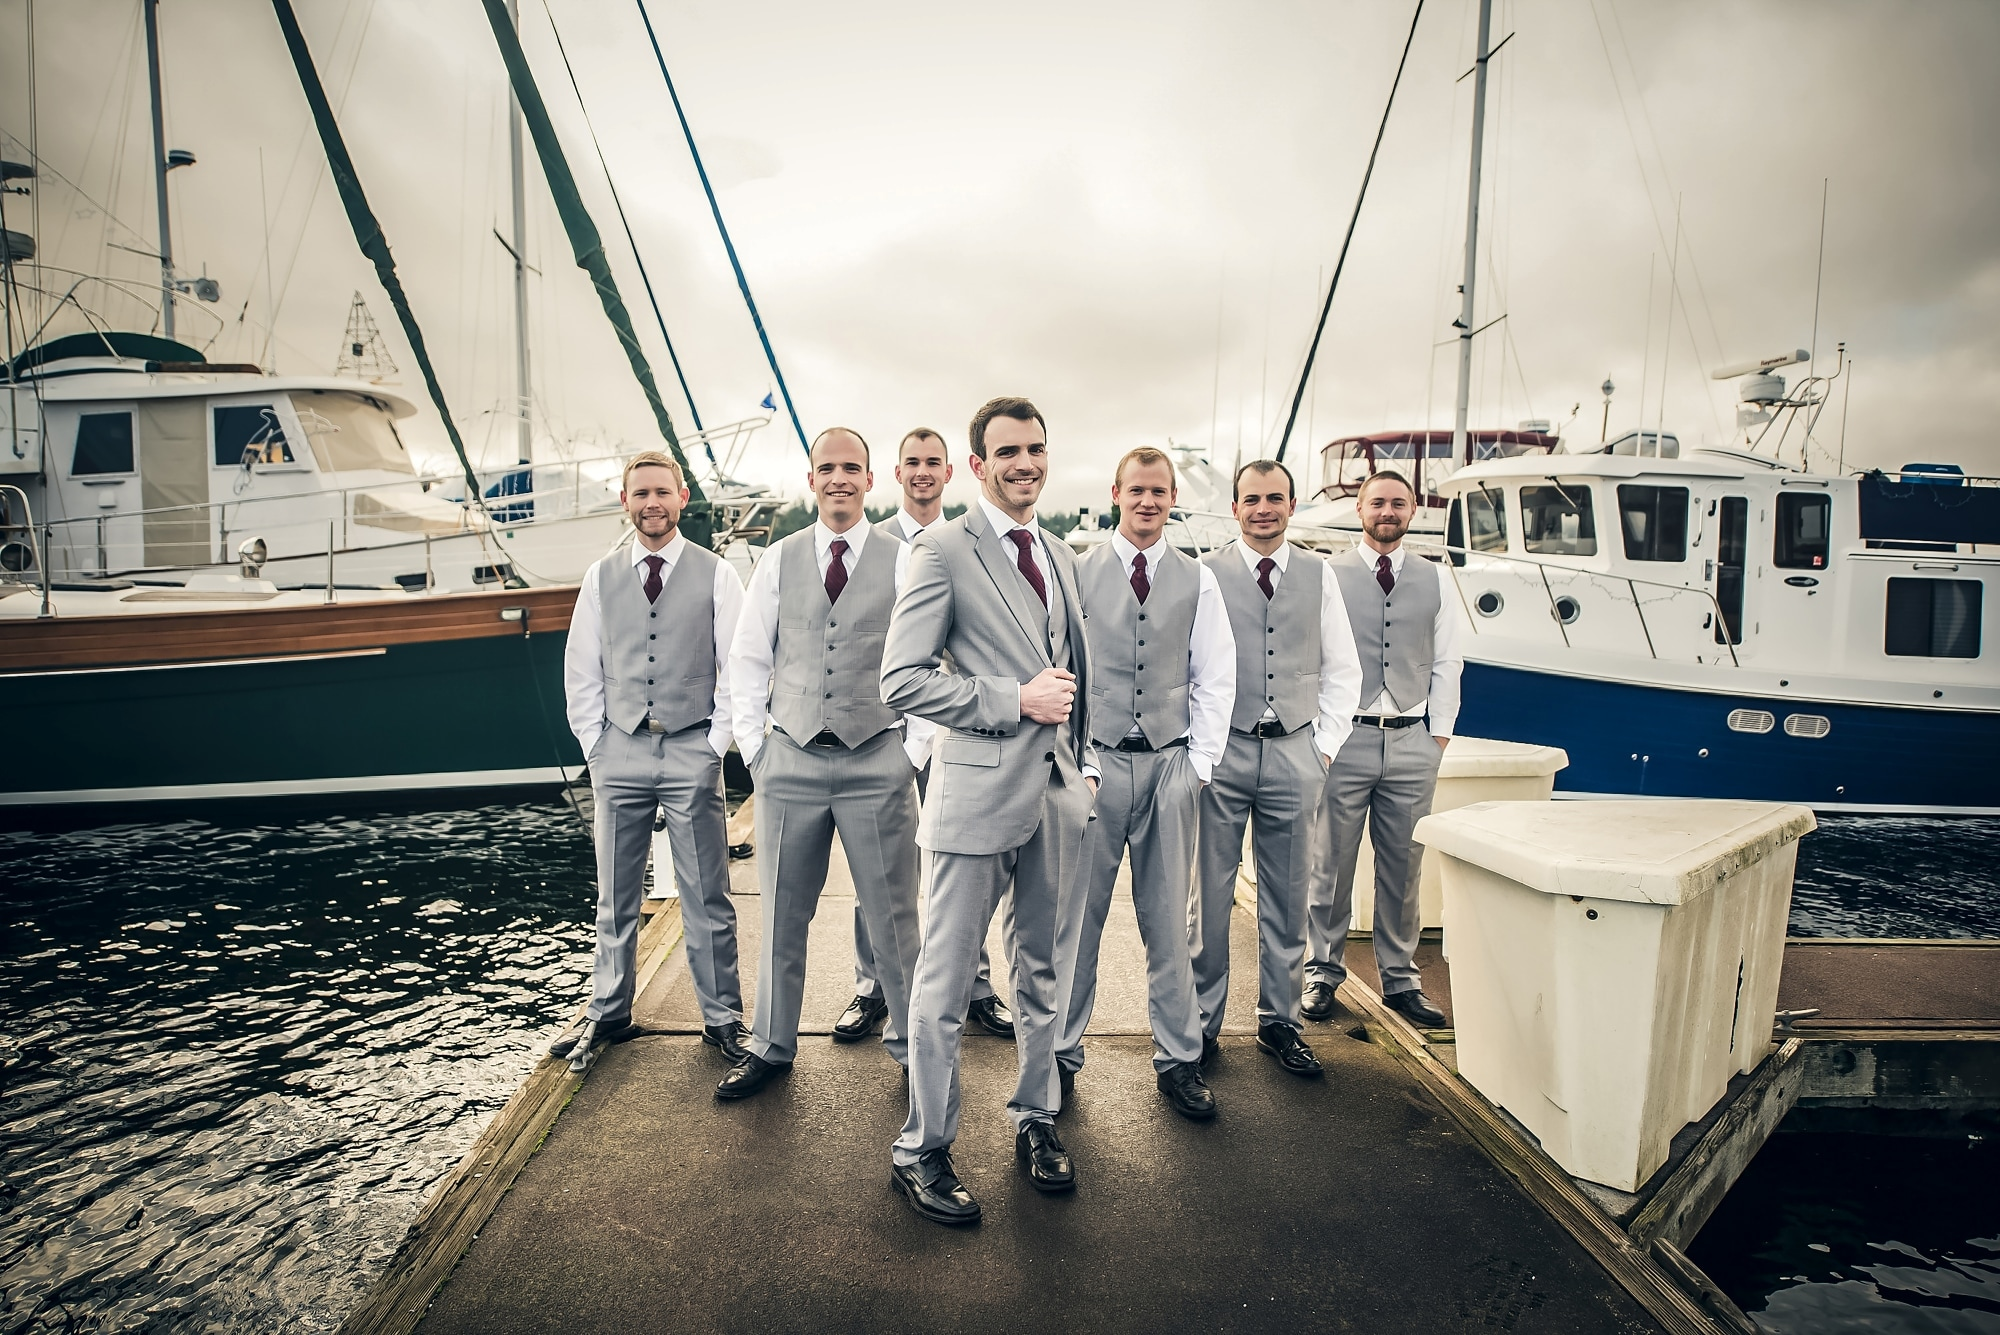 a group of people standing in front of a boat